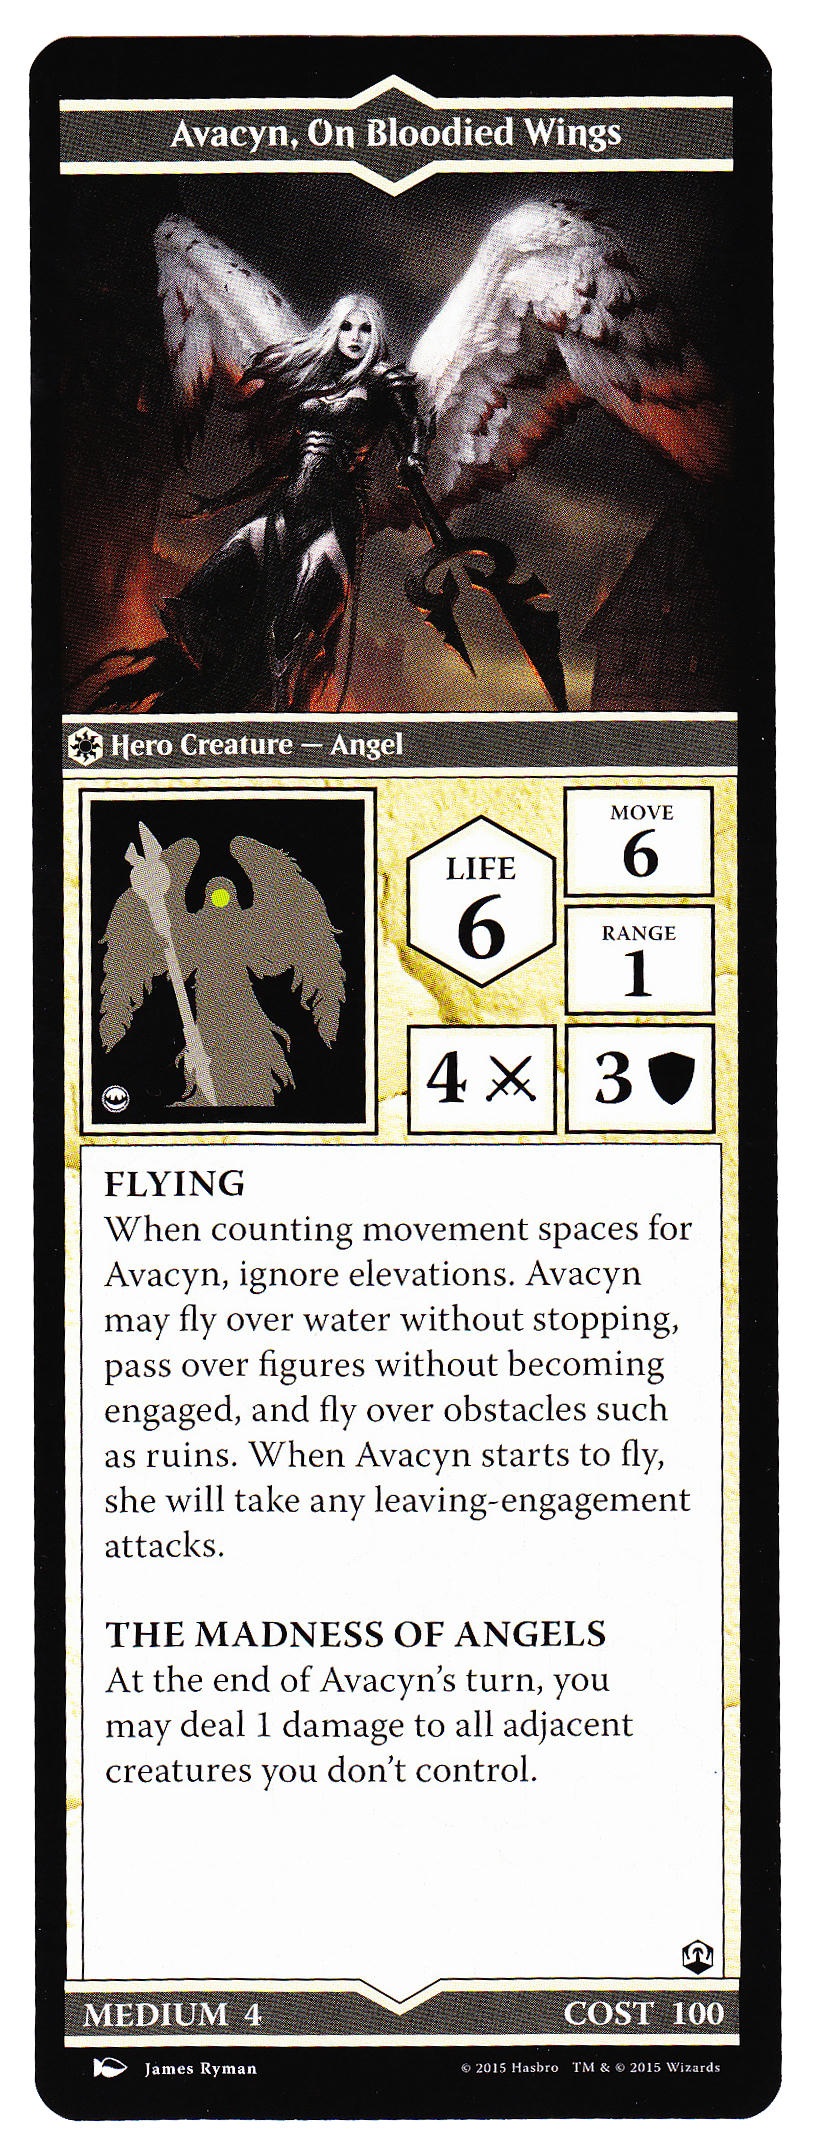 The Book of Avacyn, On Bloodied Wings - Heroscapers Planeswalker Arena